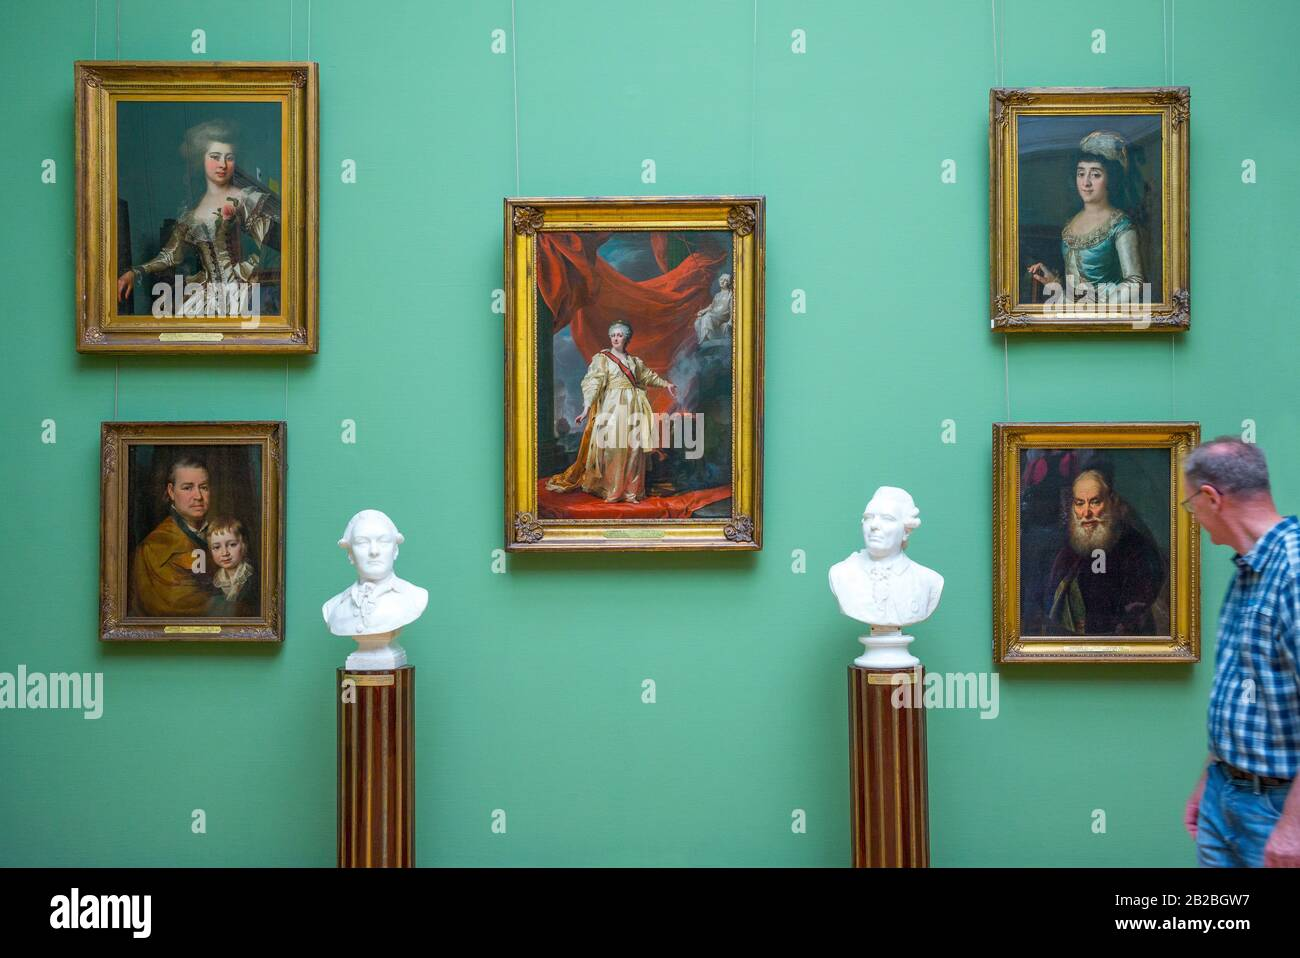 Moscow, Russia, Masterpieces of the Russian art in the Tretjakov Gallery Stock Photo